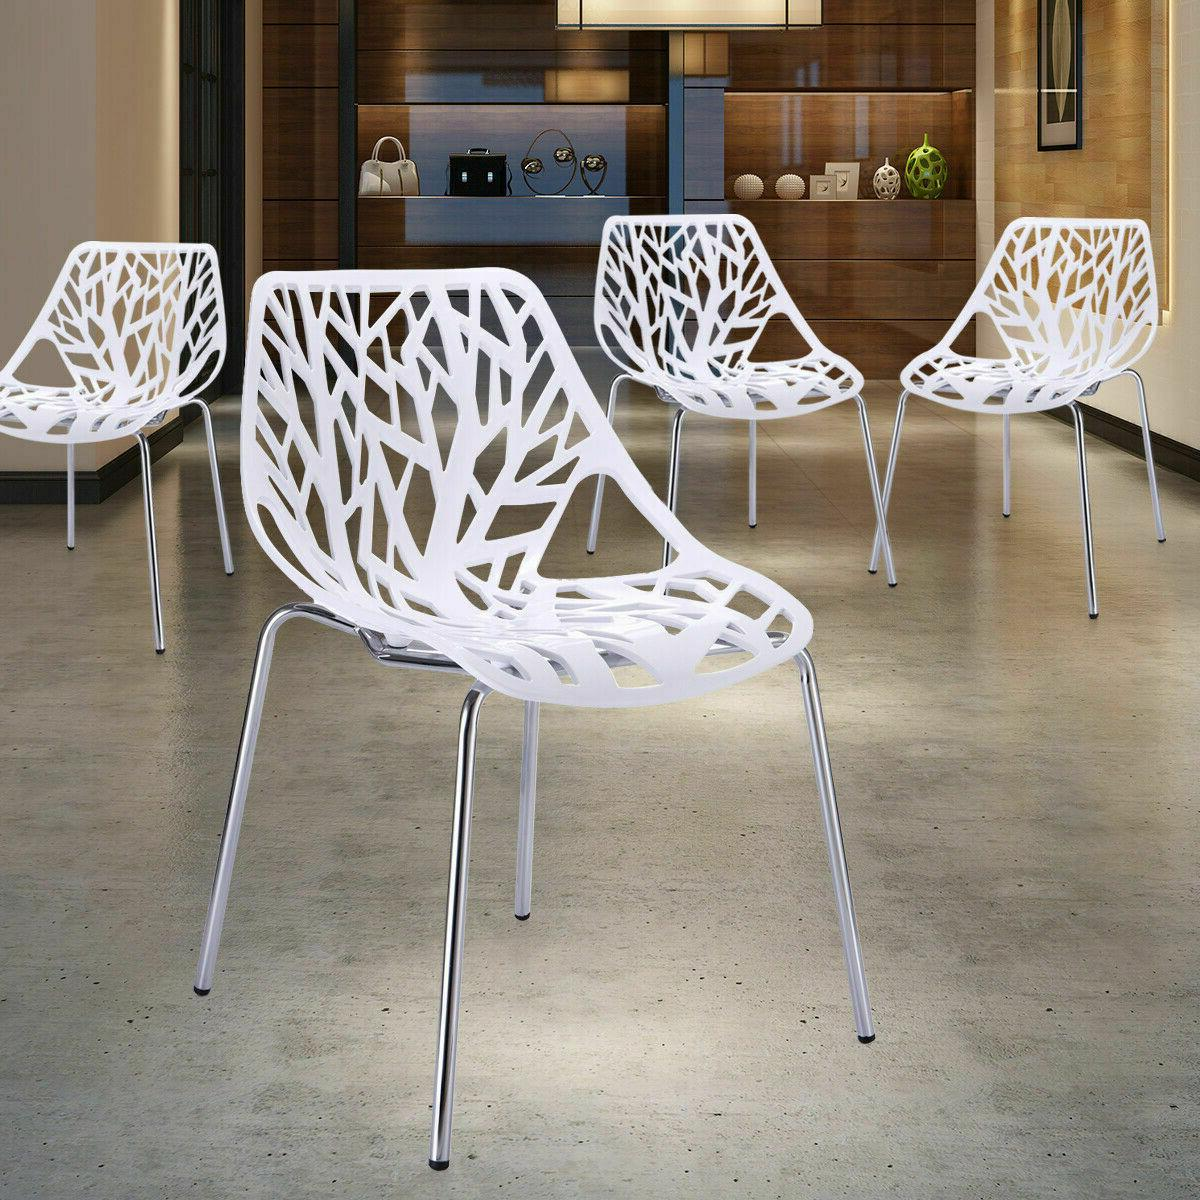 Dining Chairs Set of 4 White Chairs KID-FRIENDLY BirdNest Ch